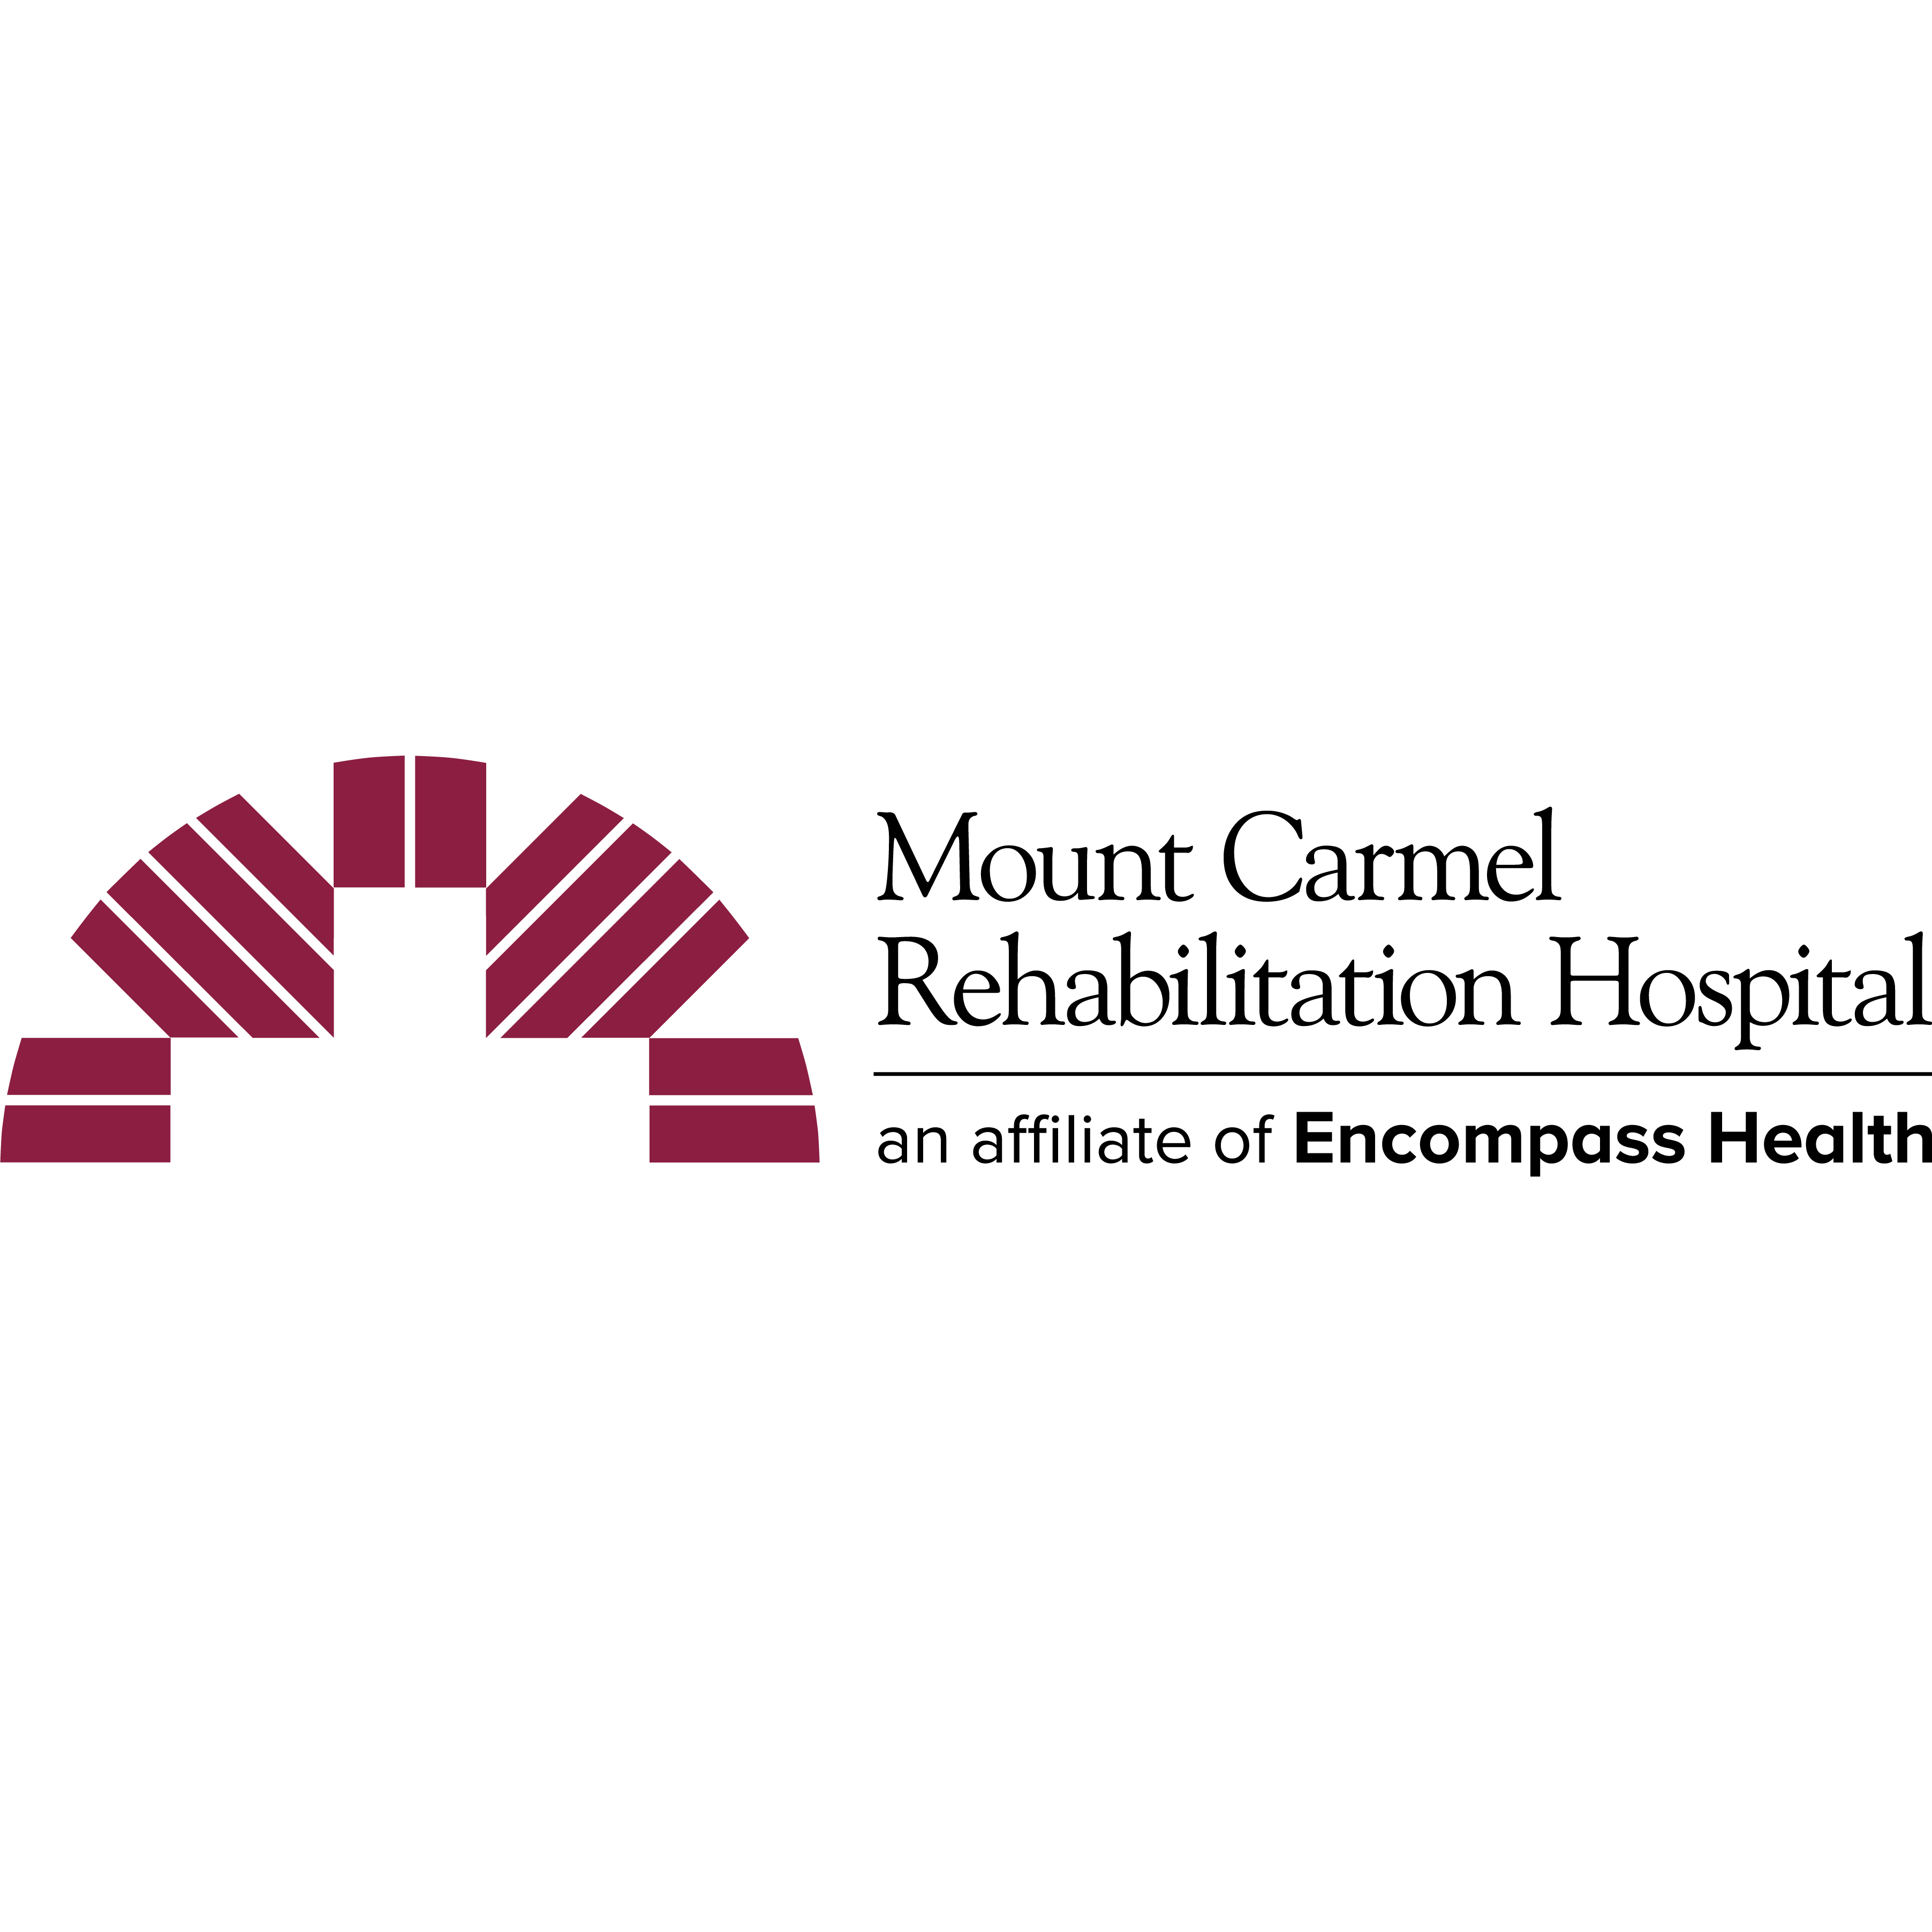 Mount Carmel Rehabilitation Hospital, an affiliate of Encompass Health